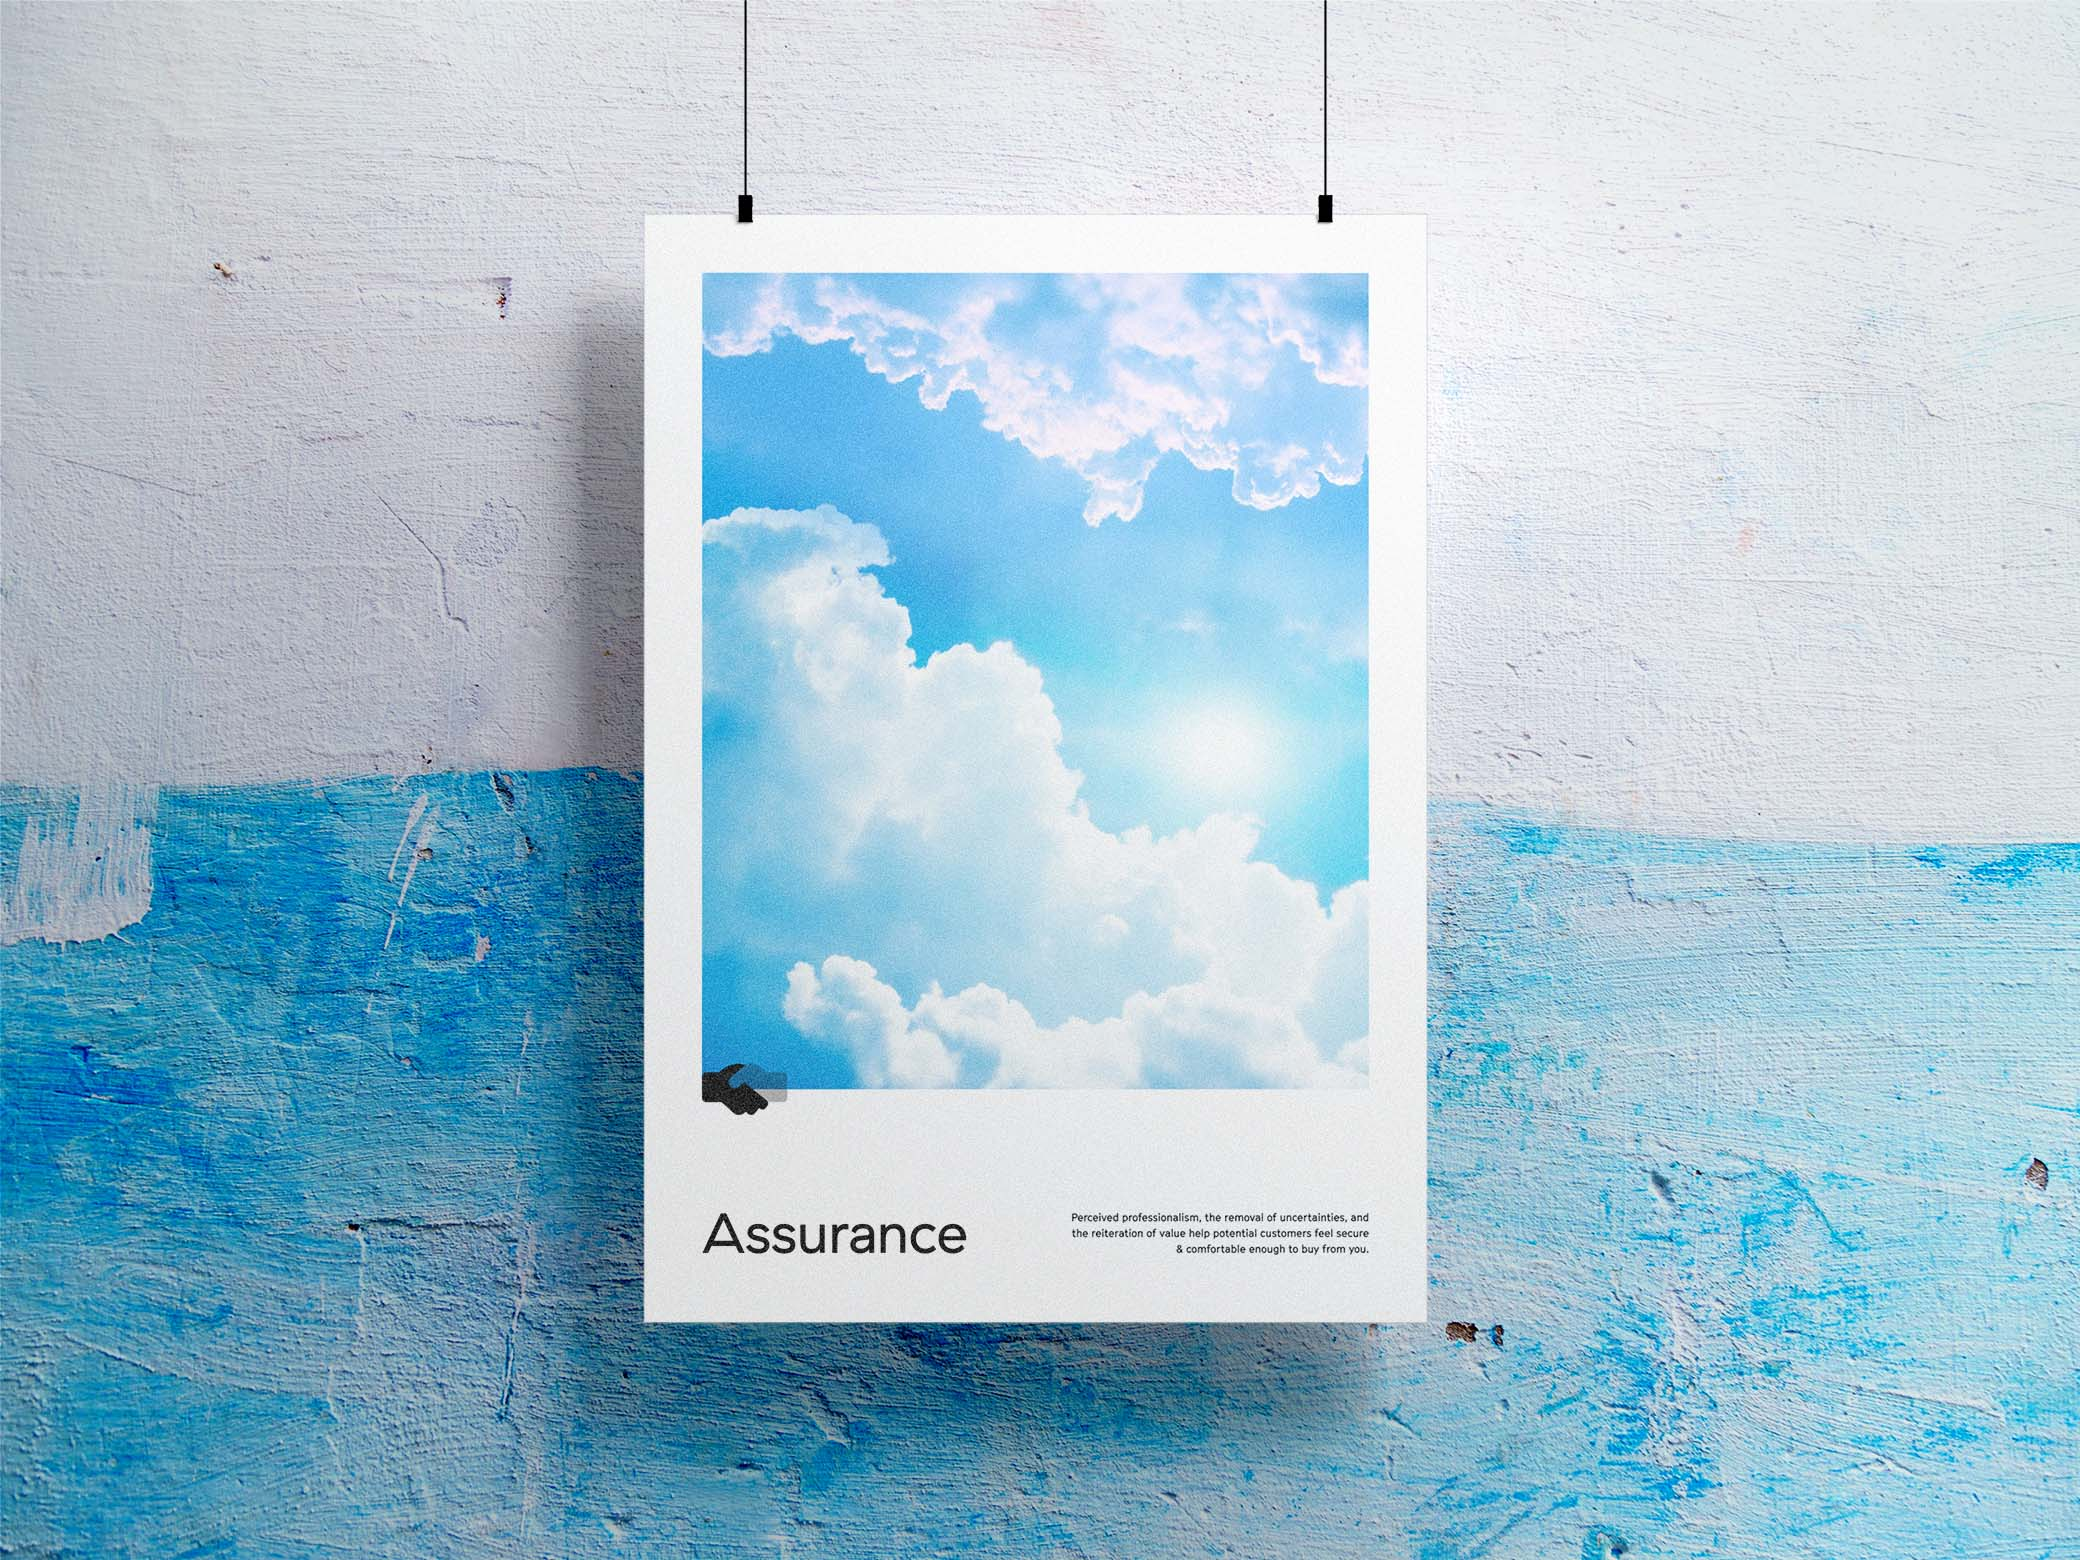 Assurance poster with image of sun shining over white clouds on a blue sky